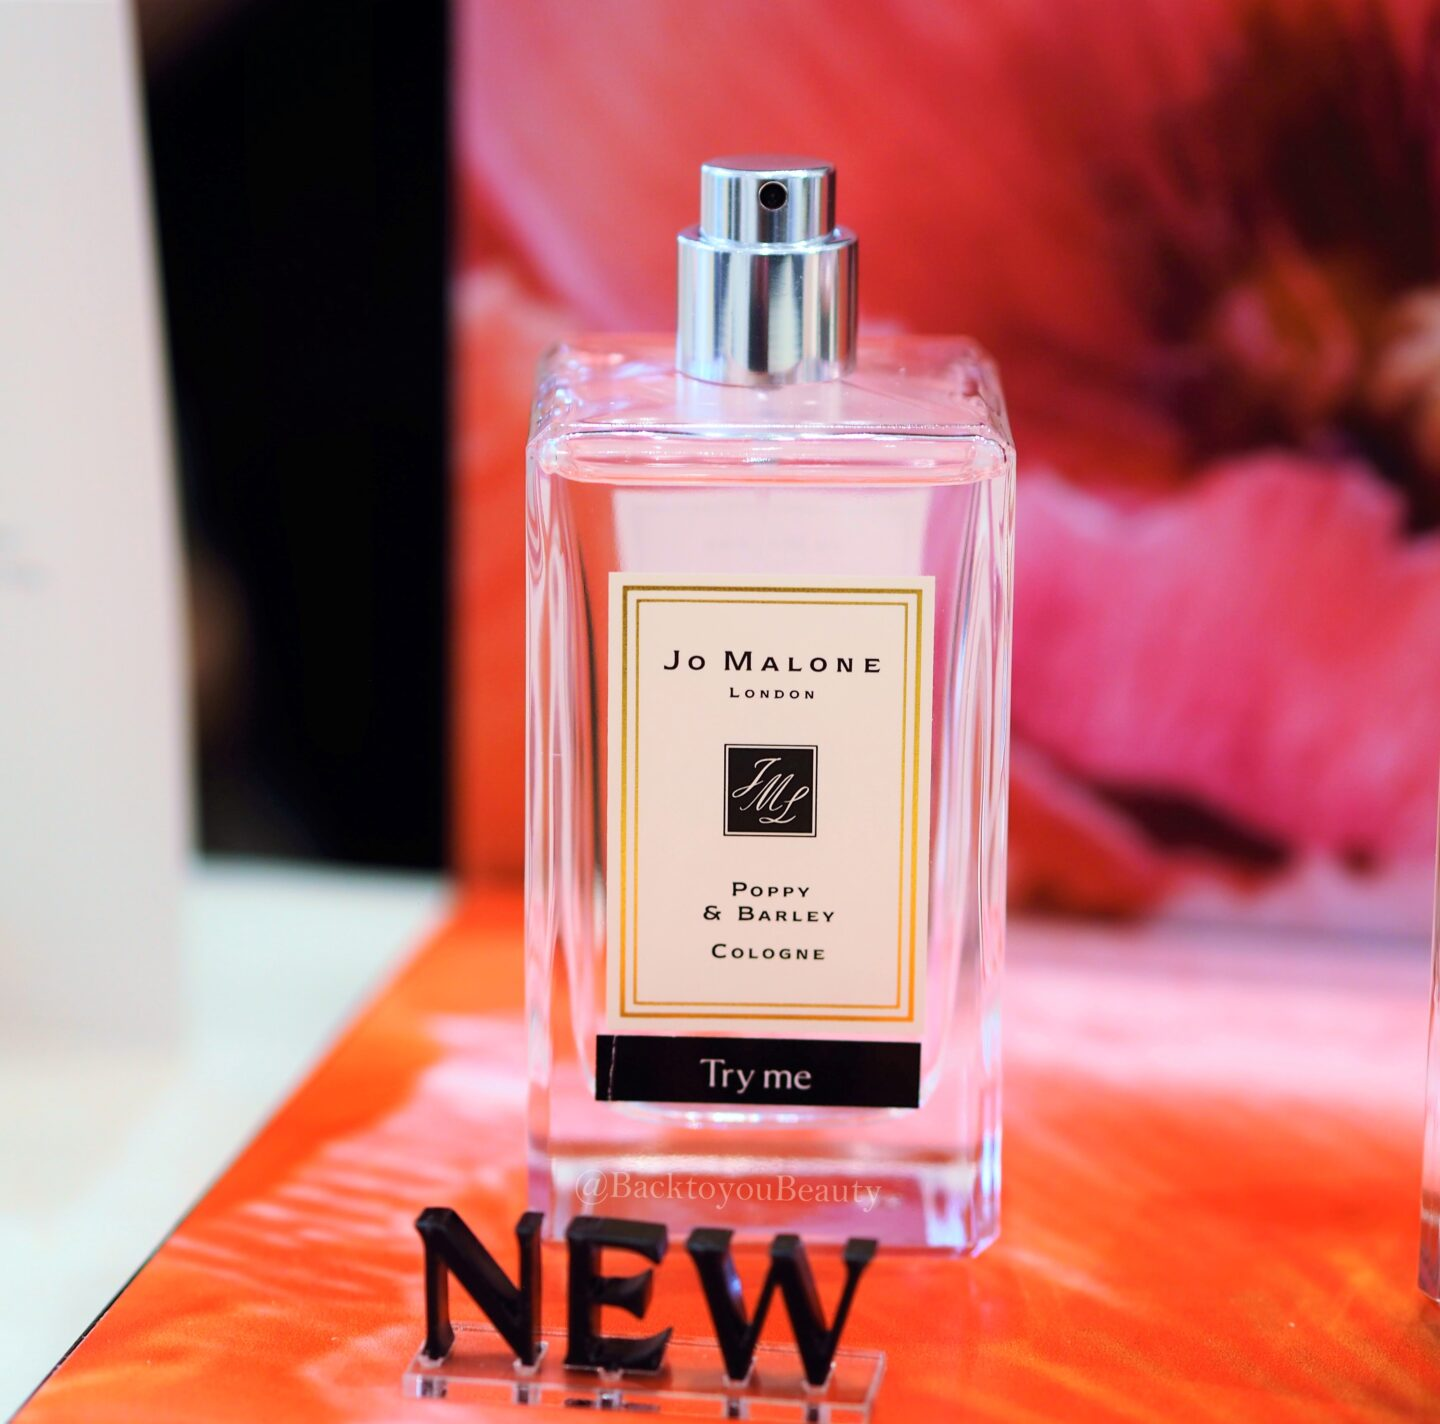 Jo Malone New Poppy & Barley Cologne